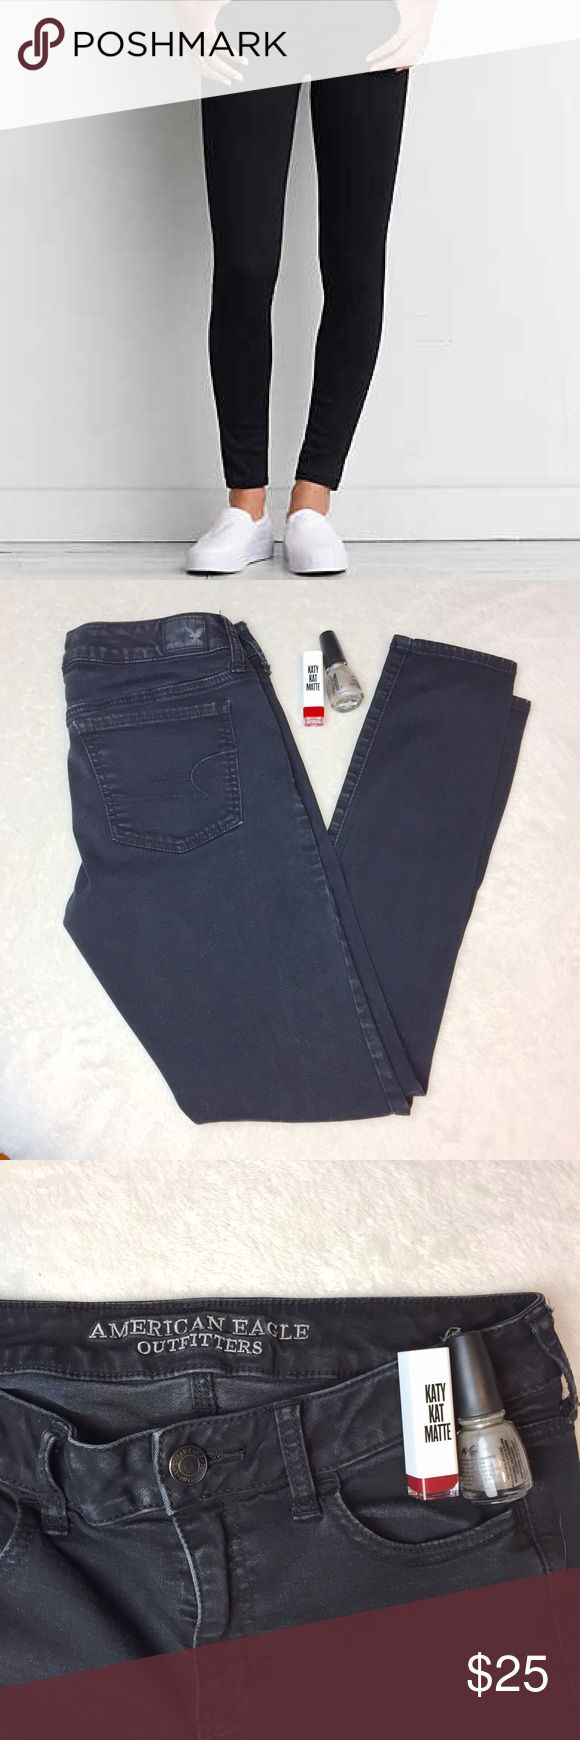 American Eagle Outfitters AEO Stretch Jeggings - 8 These American Eagle jeggings are black and a size 8. They're the super stretch kind of the AEO jeggings. They're just a little tight on me but in good work condition. No obvious flaws. Hope to find a good home! American Eagle Outfitters Pants Leggings